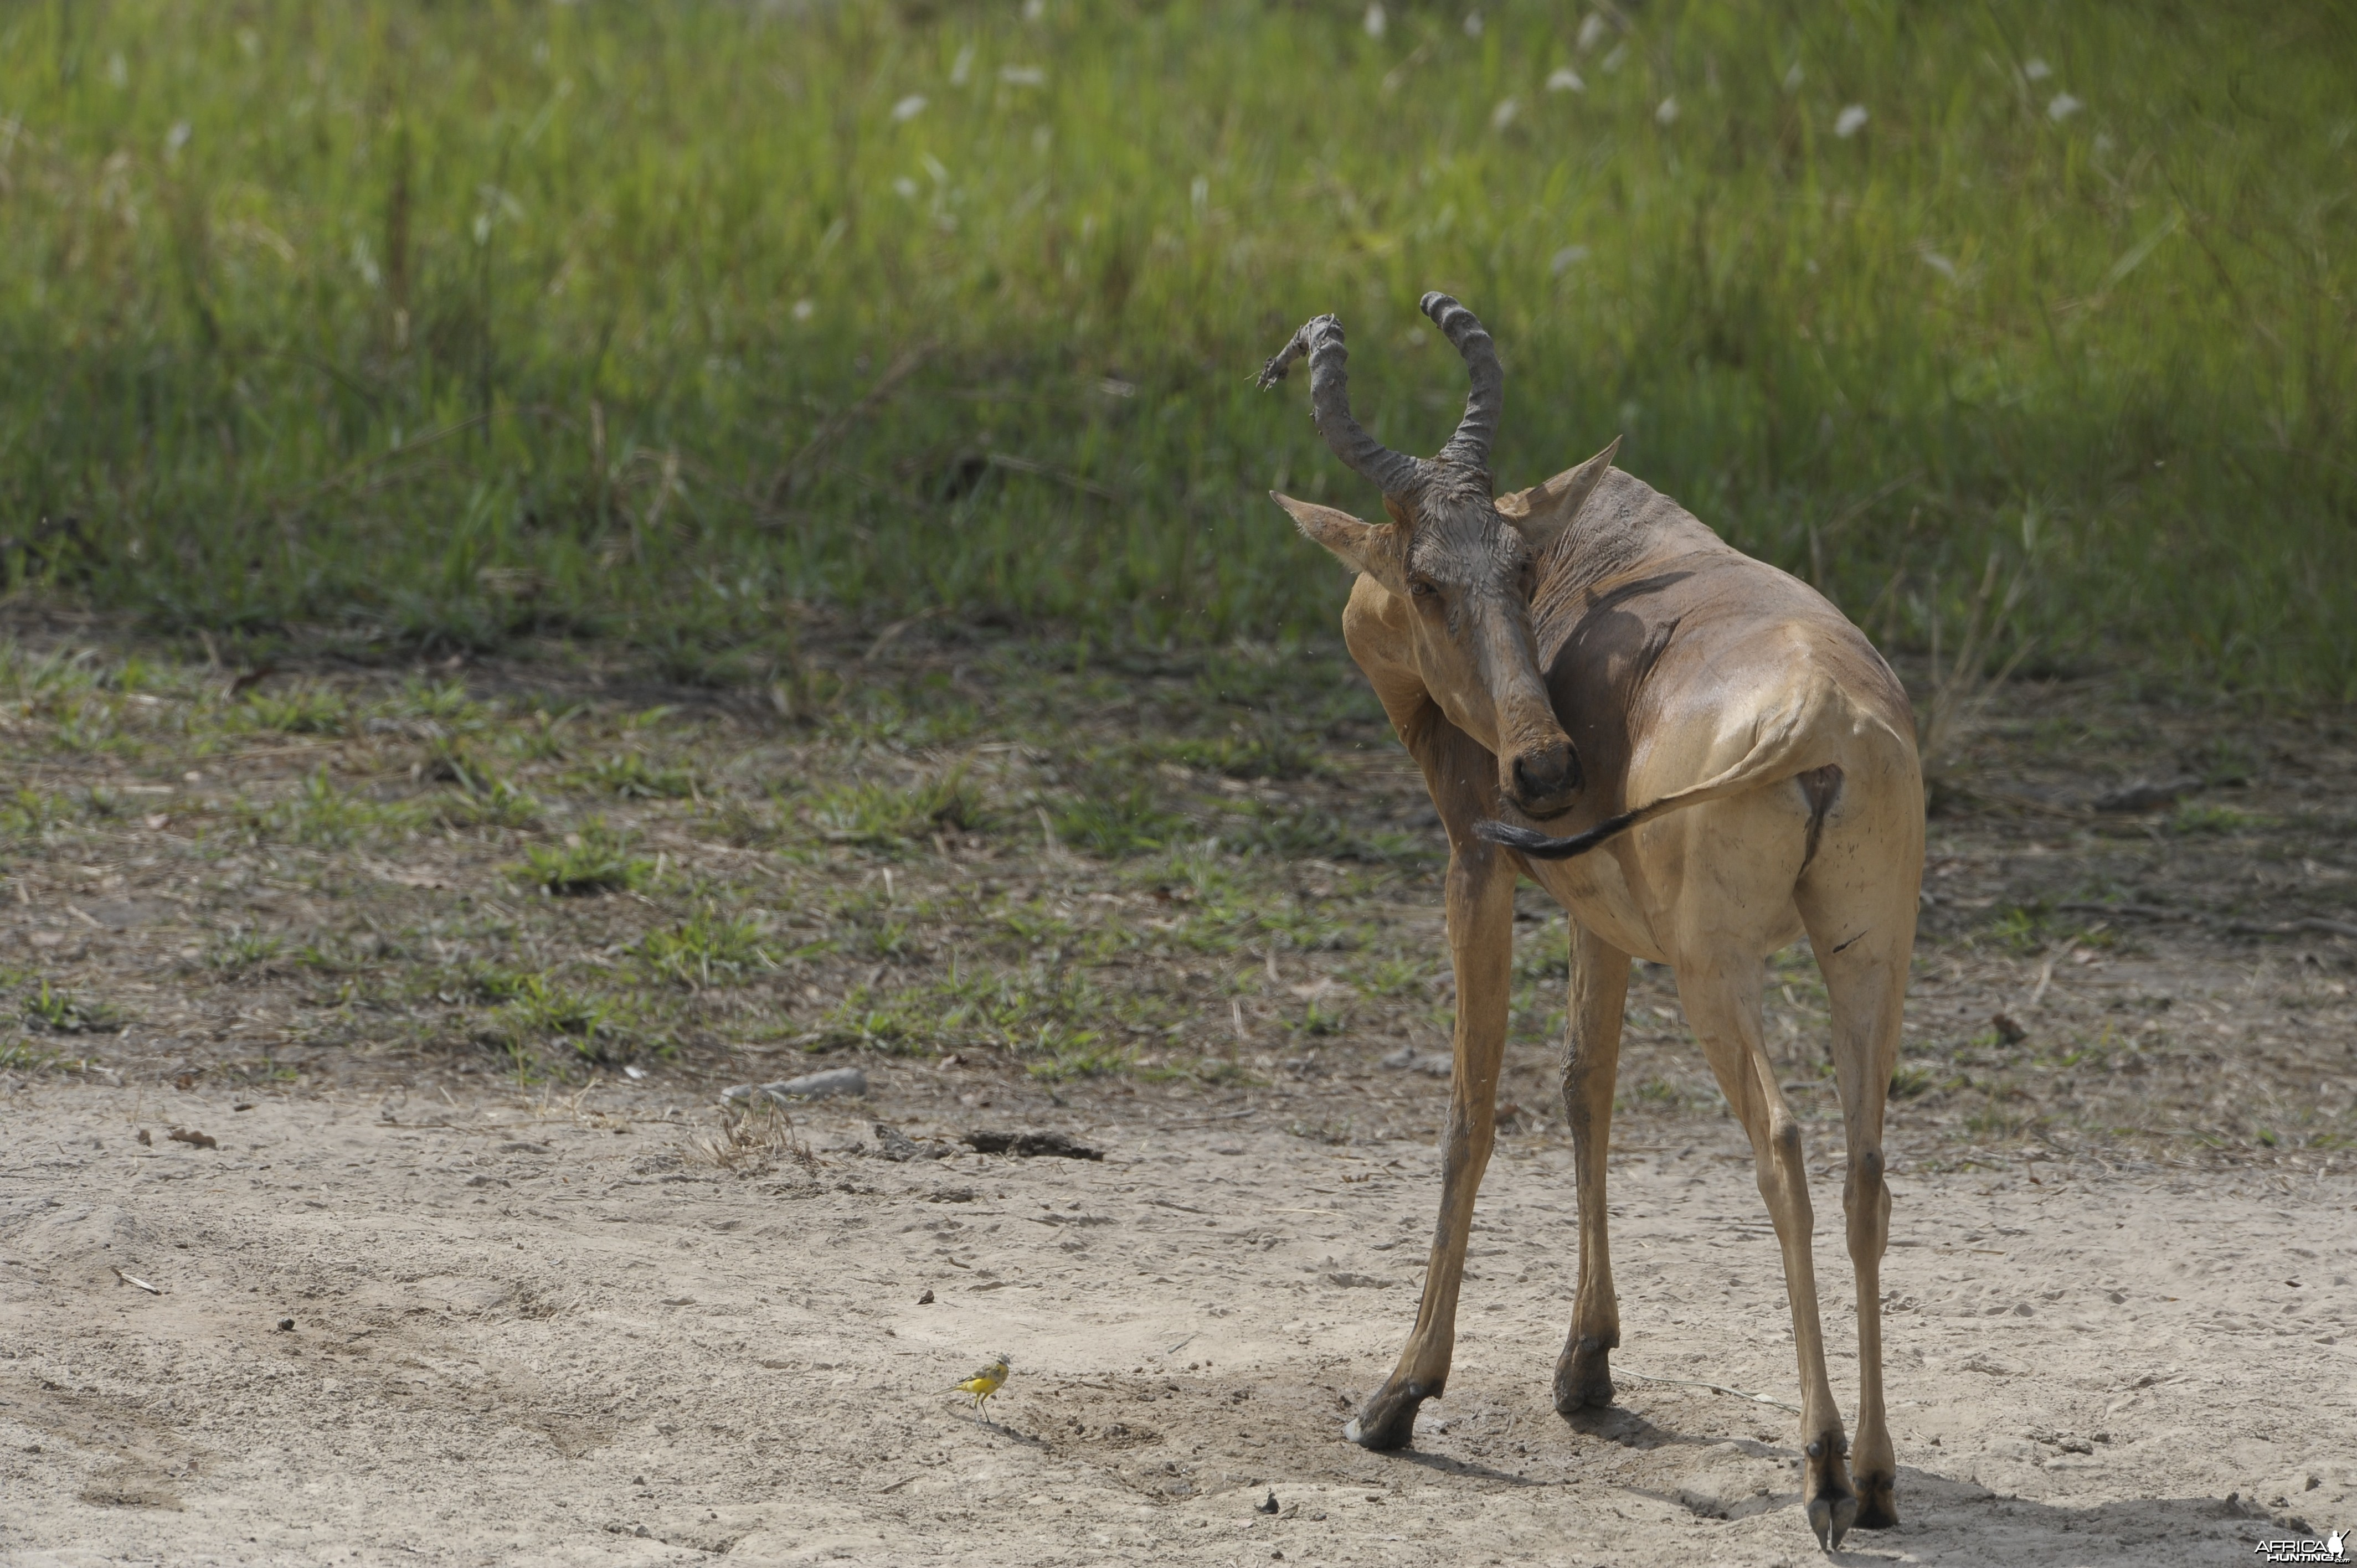 Lelwel Hartebeest in Central African Republic